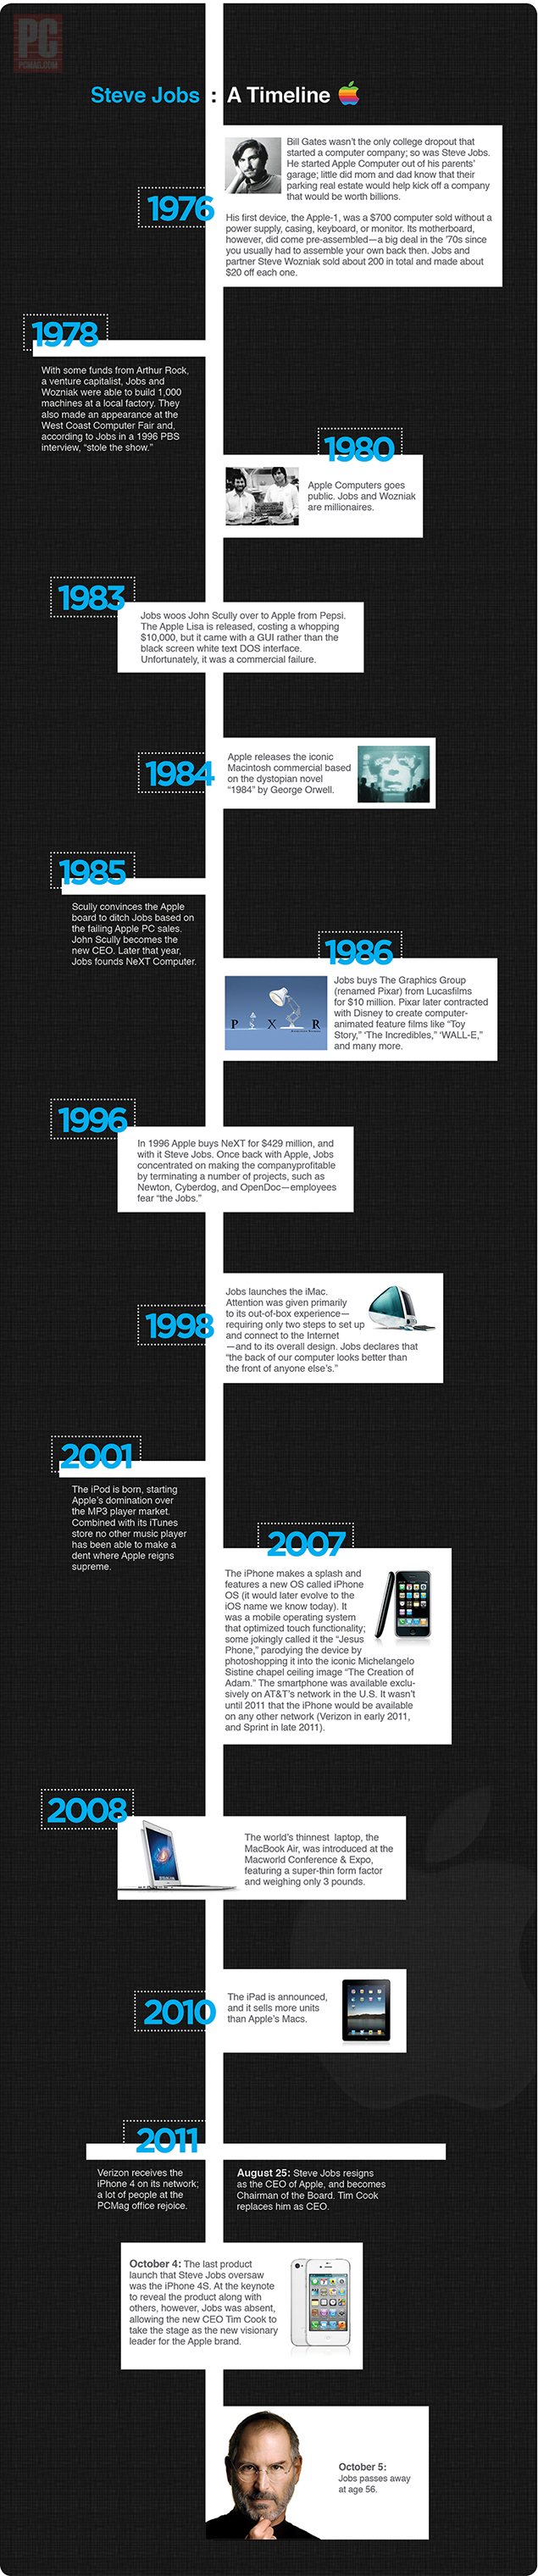 best images about steve jobs infographics steve 17 best images about steve jobs infographics steve jobs galleries and about steve jobs